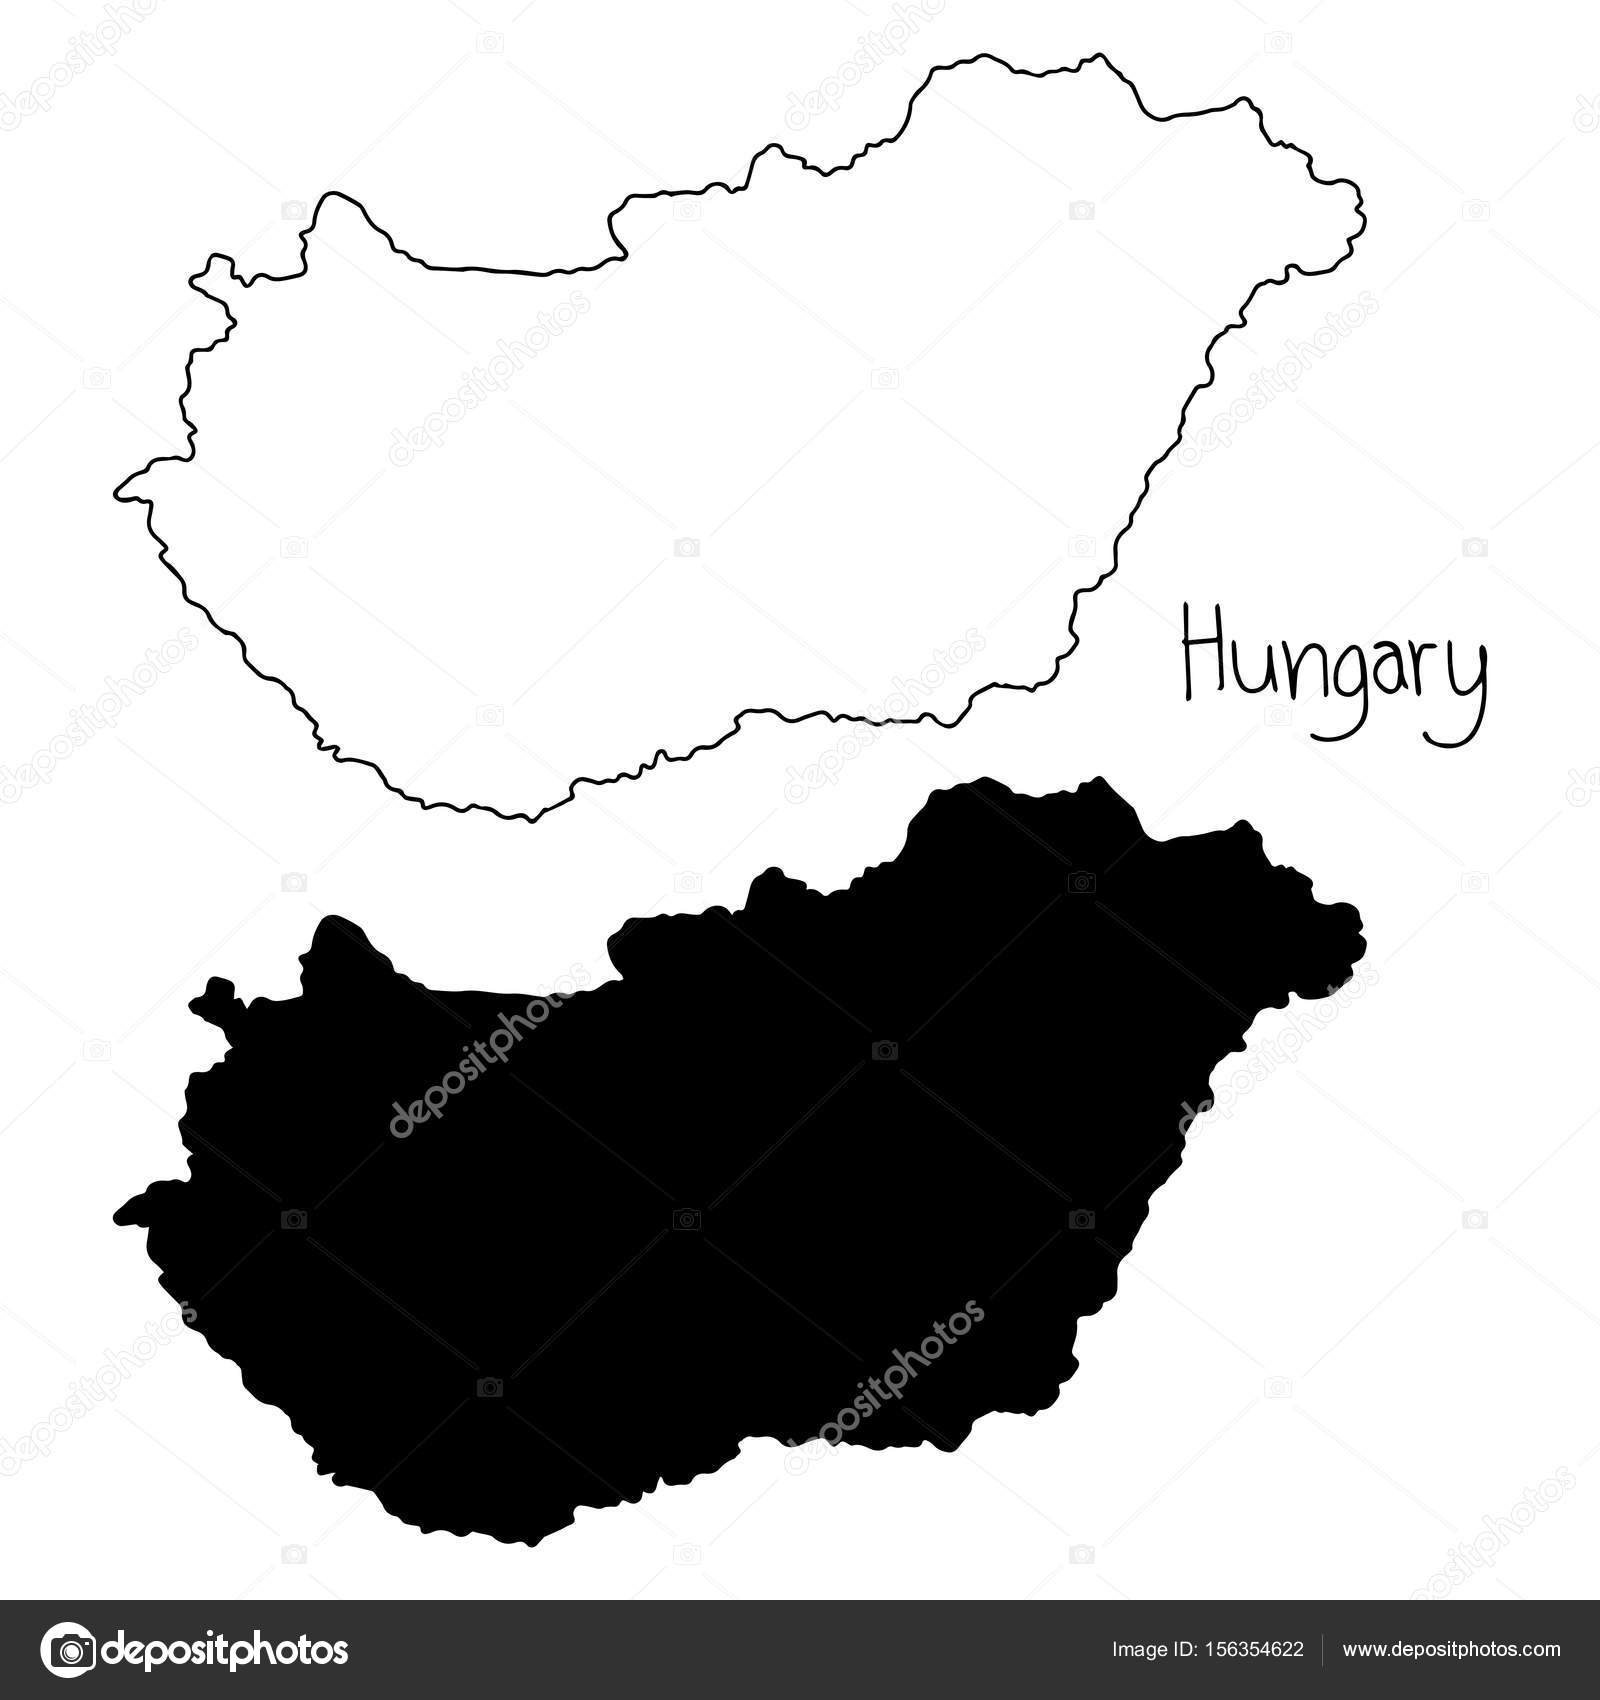 Outline And Silhouette Map Of Hungary Vector Illustration Hand